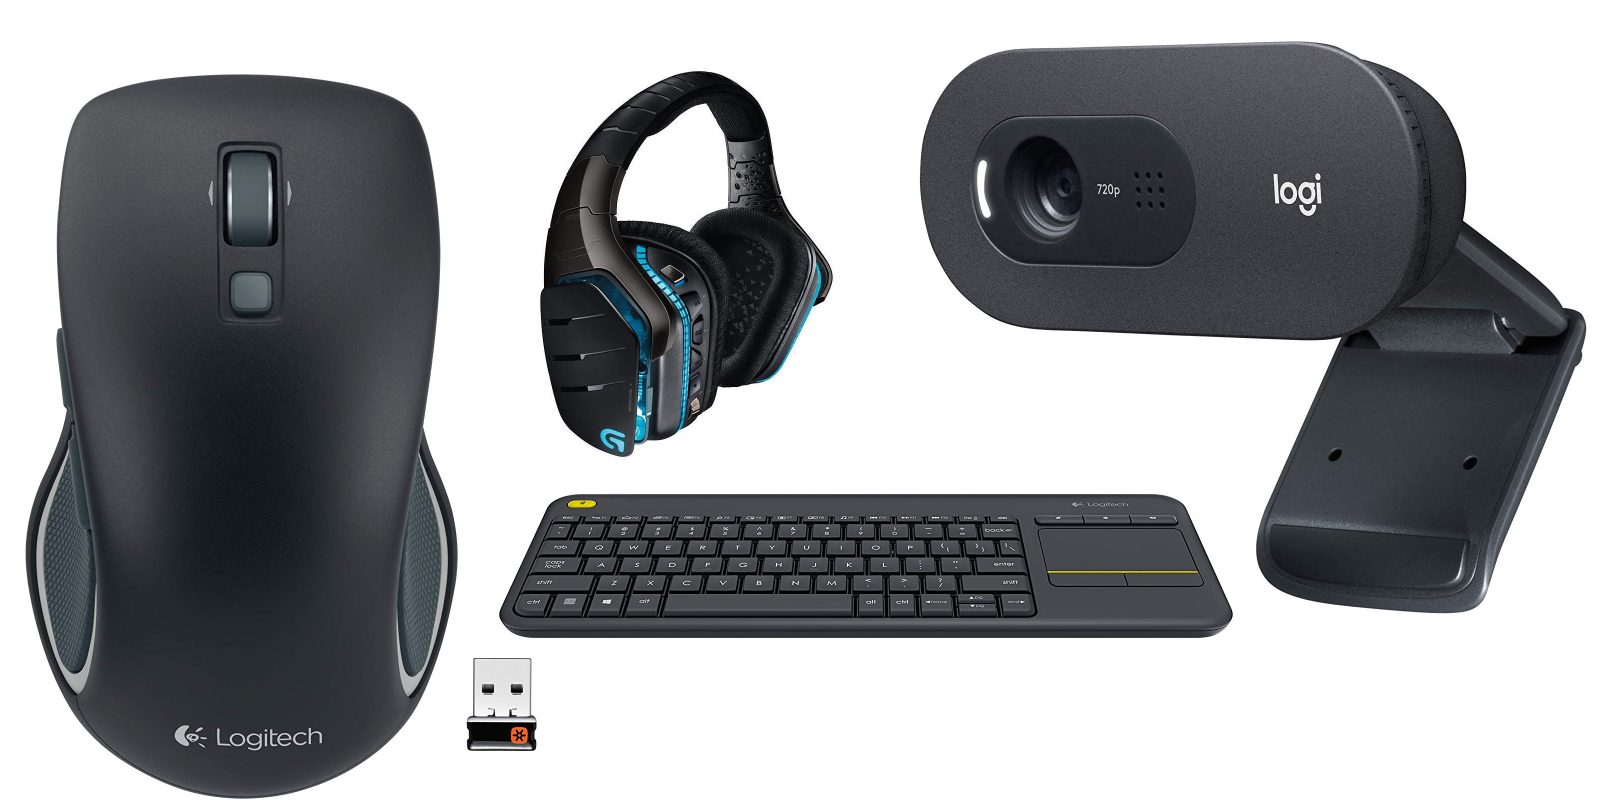 Logitech gear up to 40% off at Amazon today from $14: keyboards, mice, webcams, more